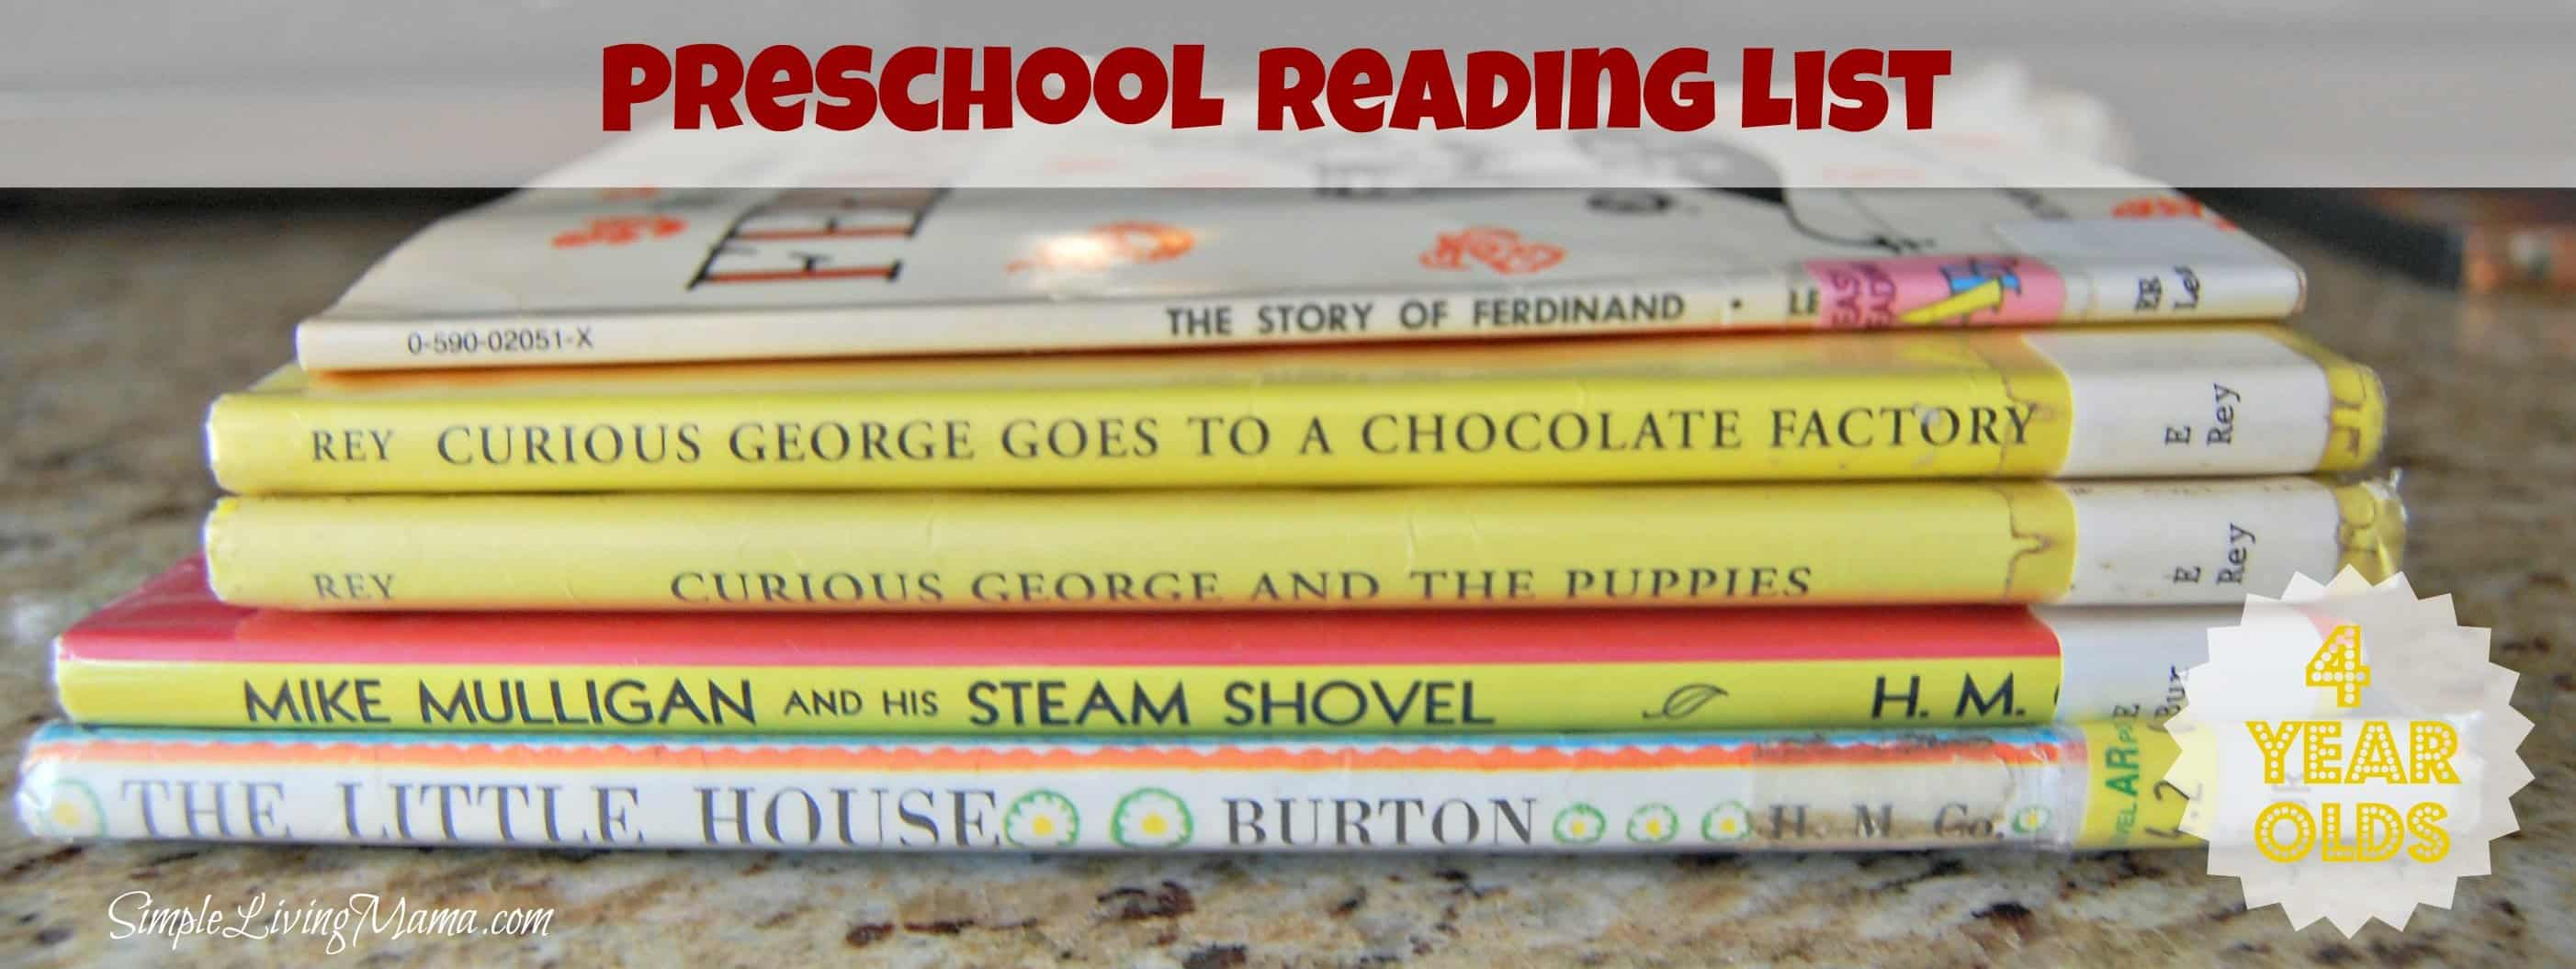 our preschool book list for 4 year olds simple living mama